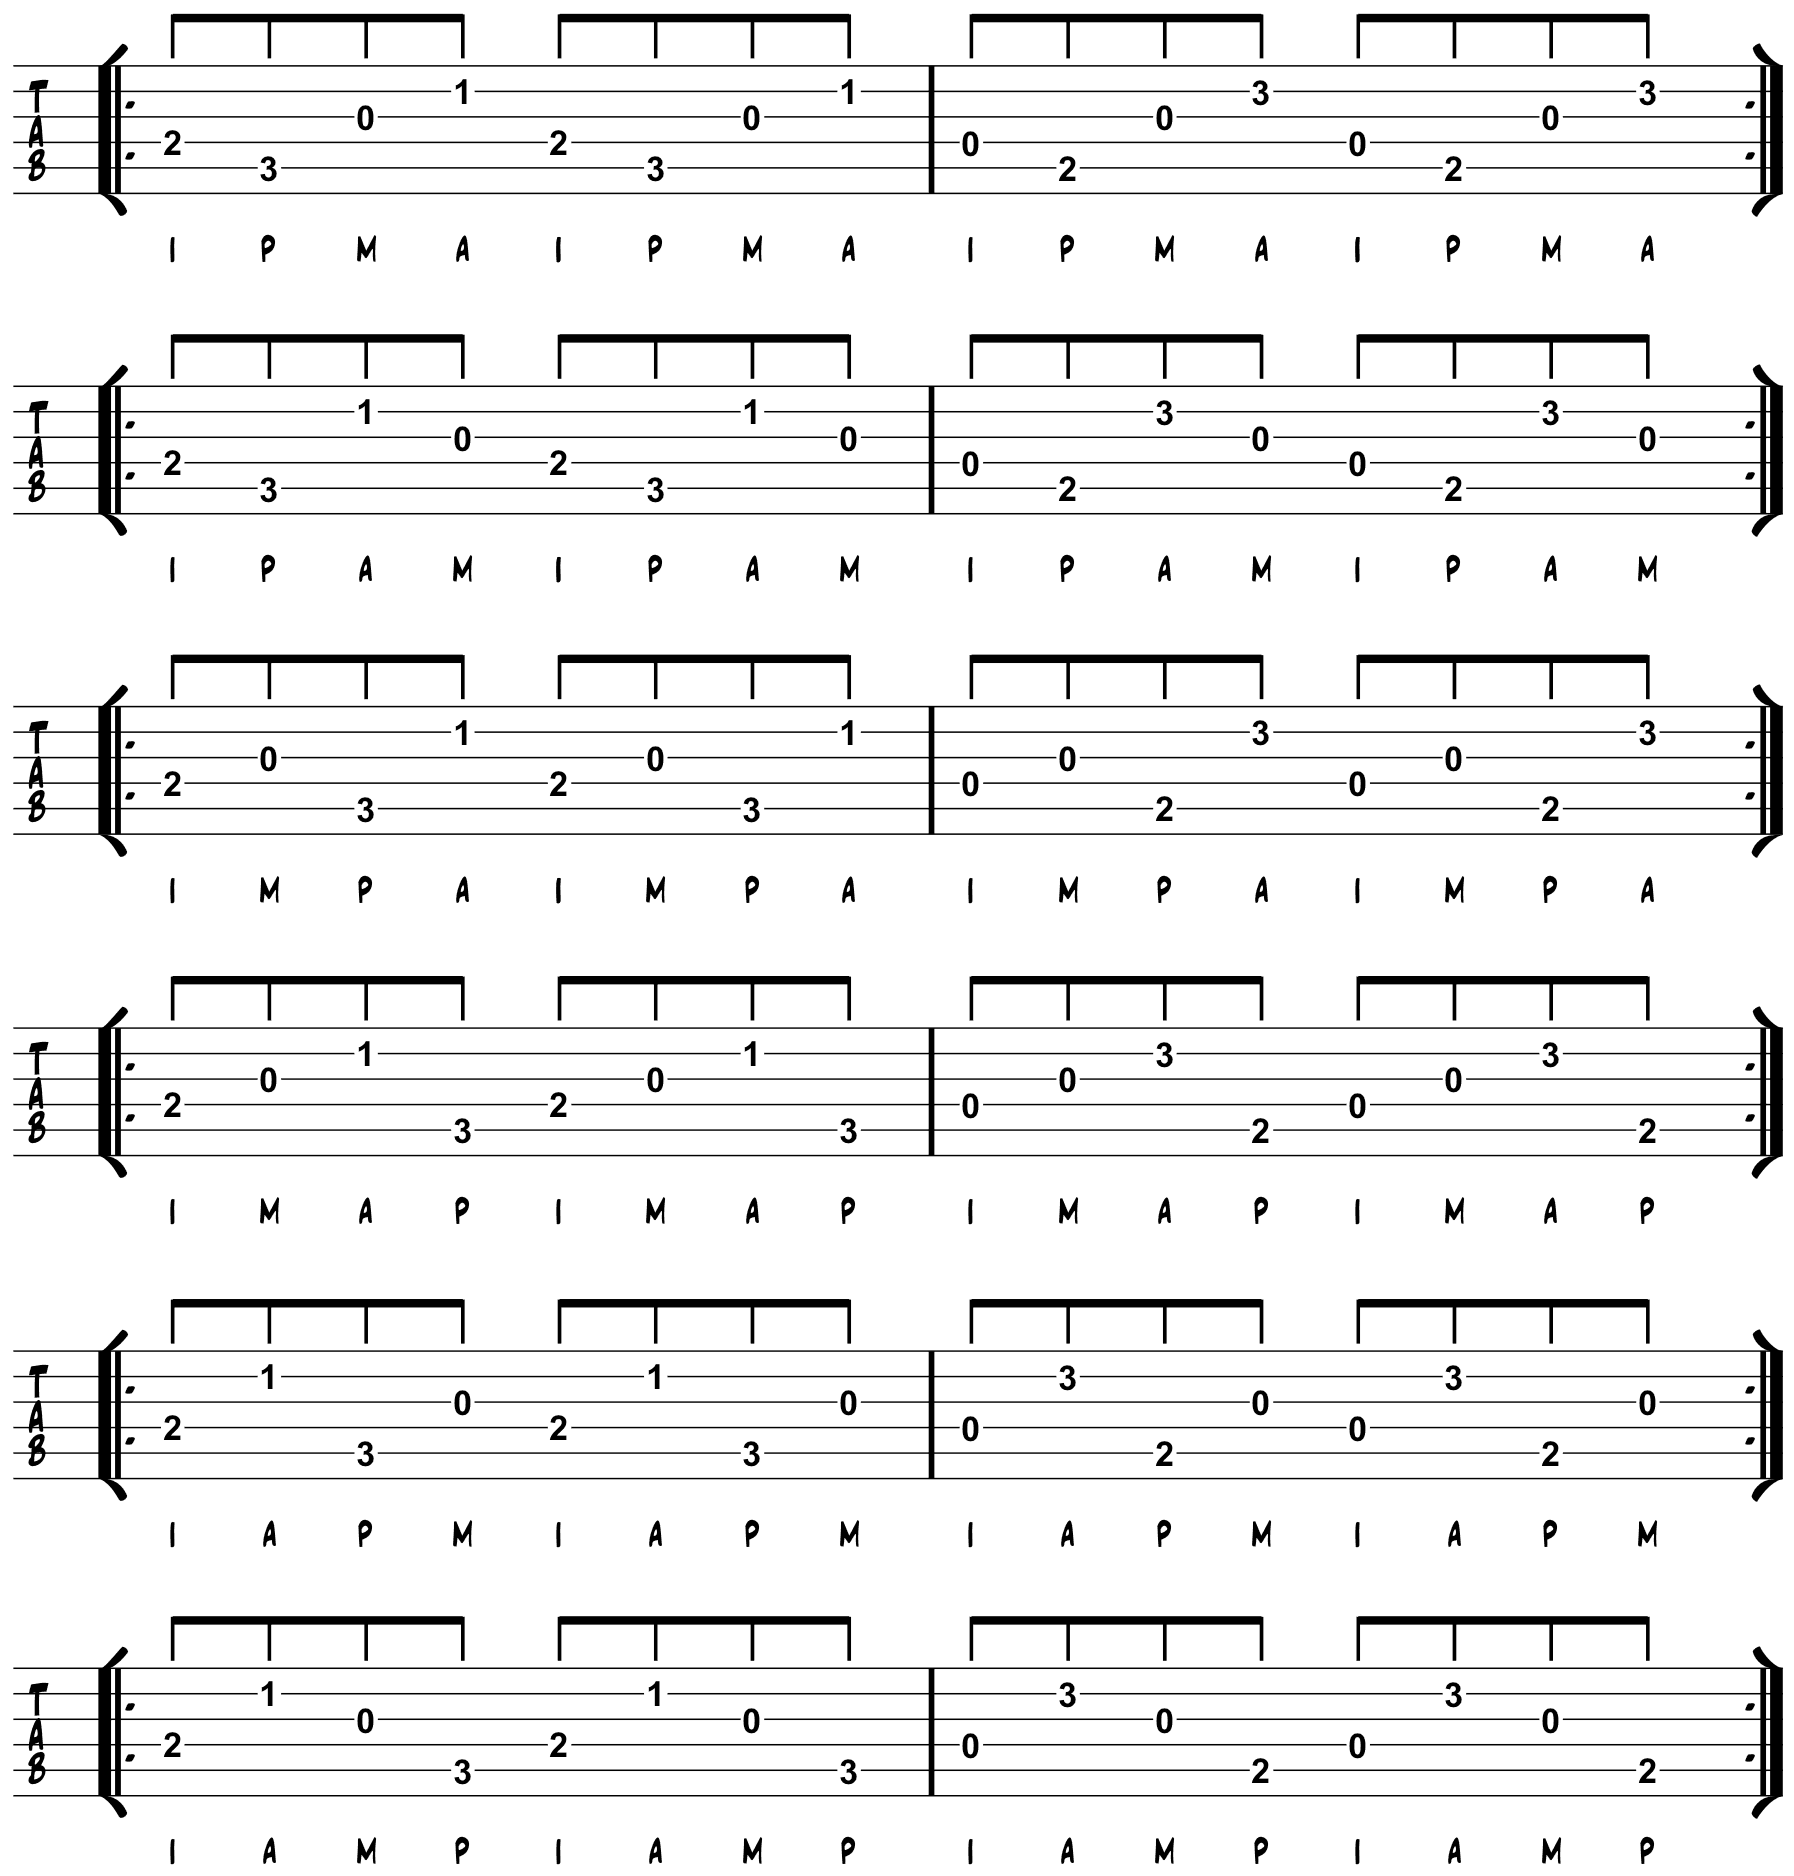 Fingerpicking Pattern - Index Finger